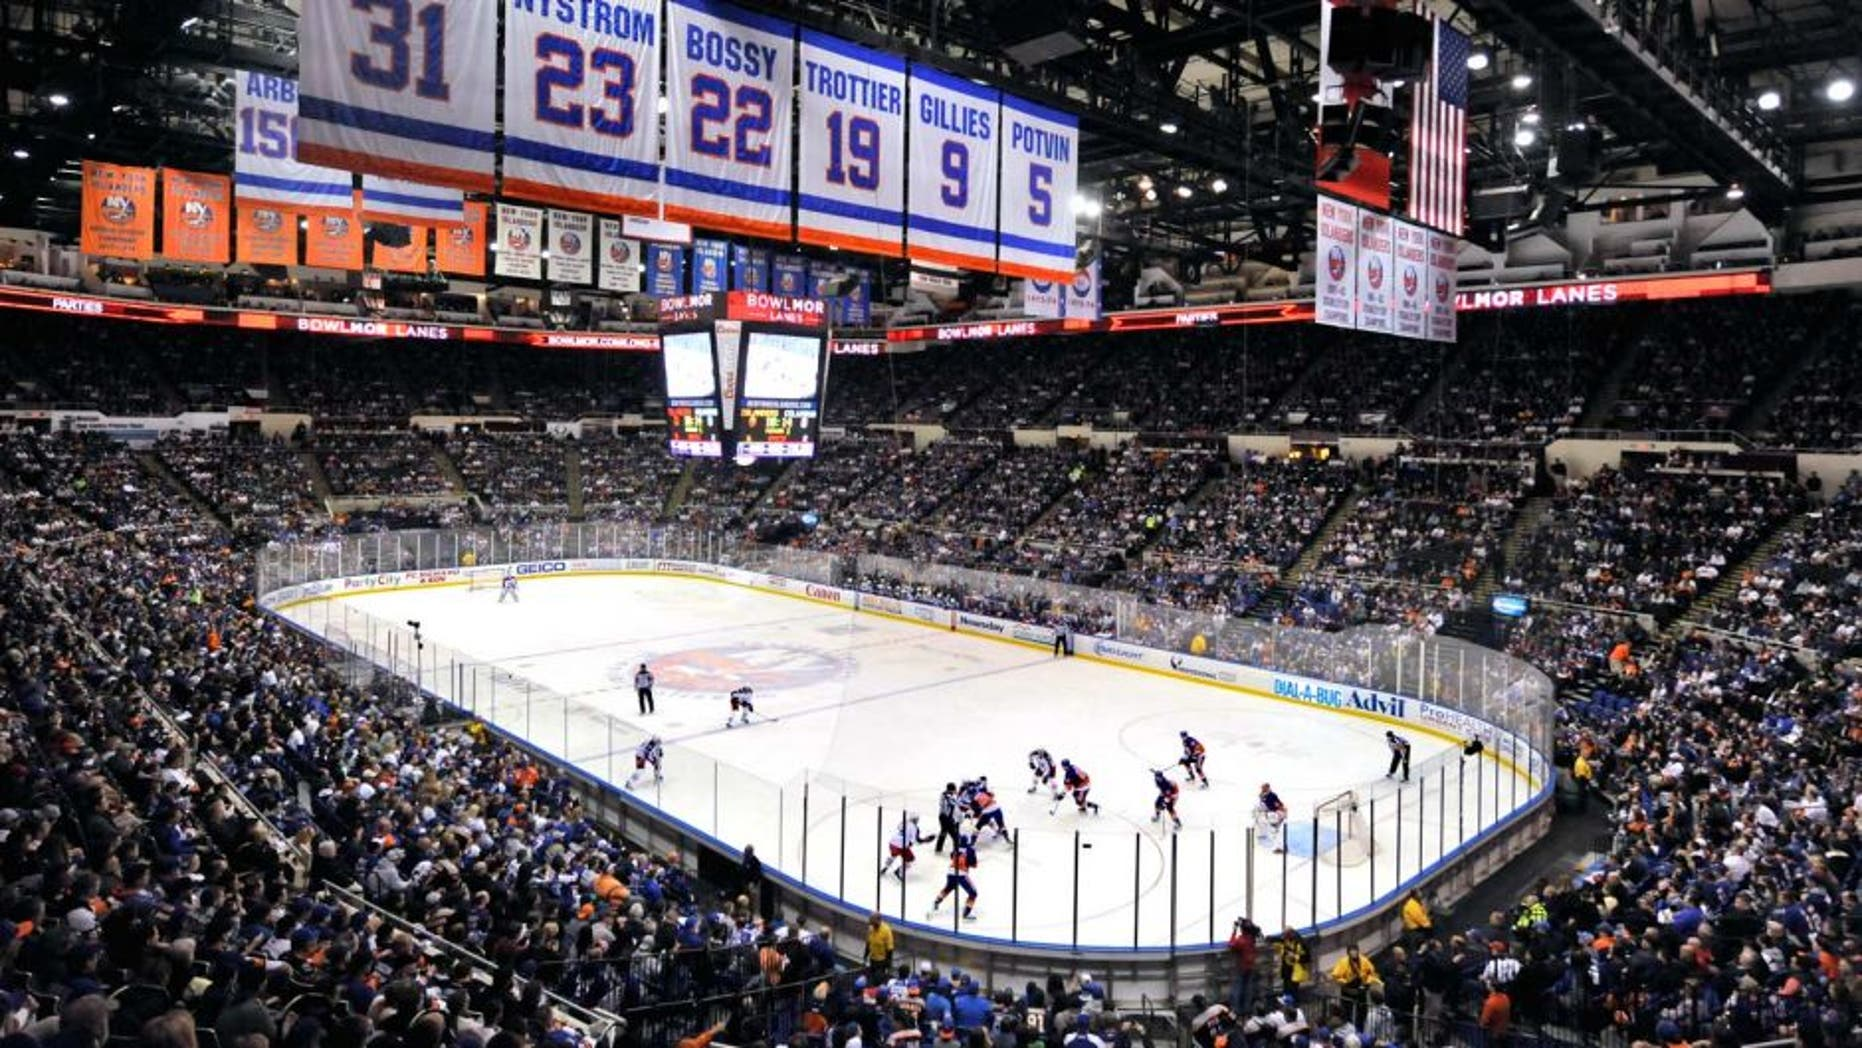 This April 11, 2015 file photo show the New York Islanders play against the Columbus Blue Jackets in the first period of the Islanders last regular season home game at the Nassau Veterans Memorial Coliseum, in Uniondale, NY. For loyal fans of the Islanders, this yearís playoff run is tinged with even more of a sense of finality, and yes, sadness. Win or lose, these will be the last games for Long Islandís only major pro sports franchise, which will move to Brooklyn at the end of the season. (AP Photo/Kathy Kmonicek, File)